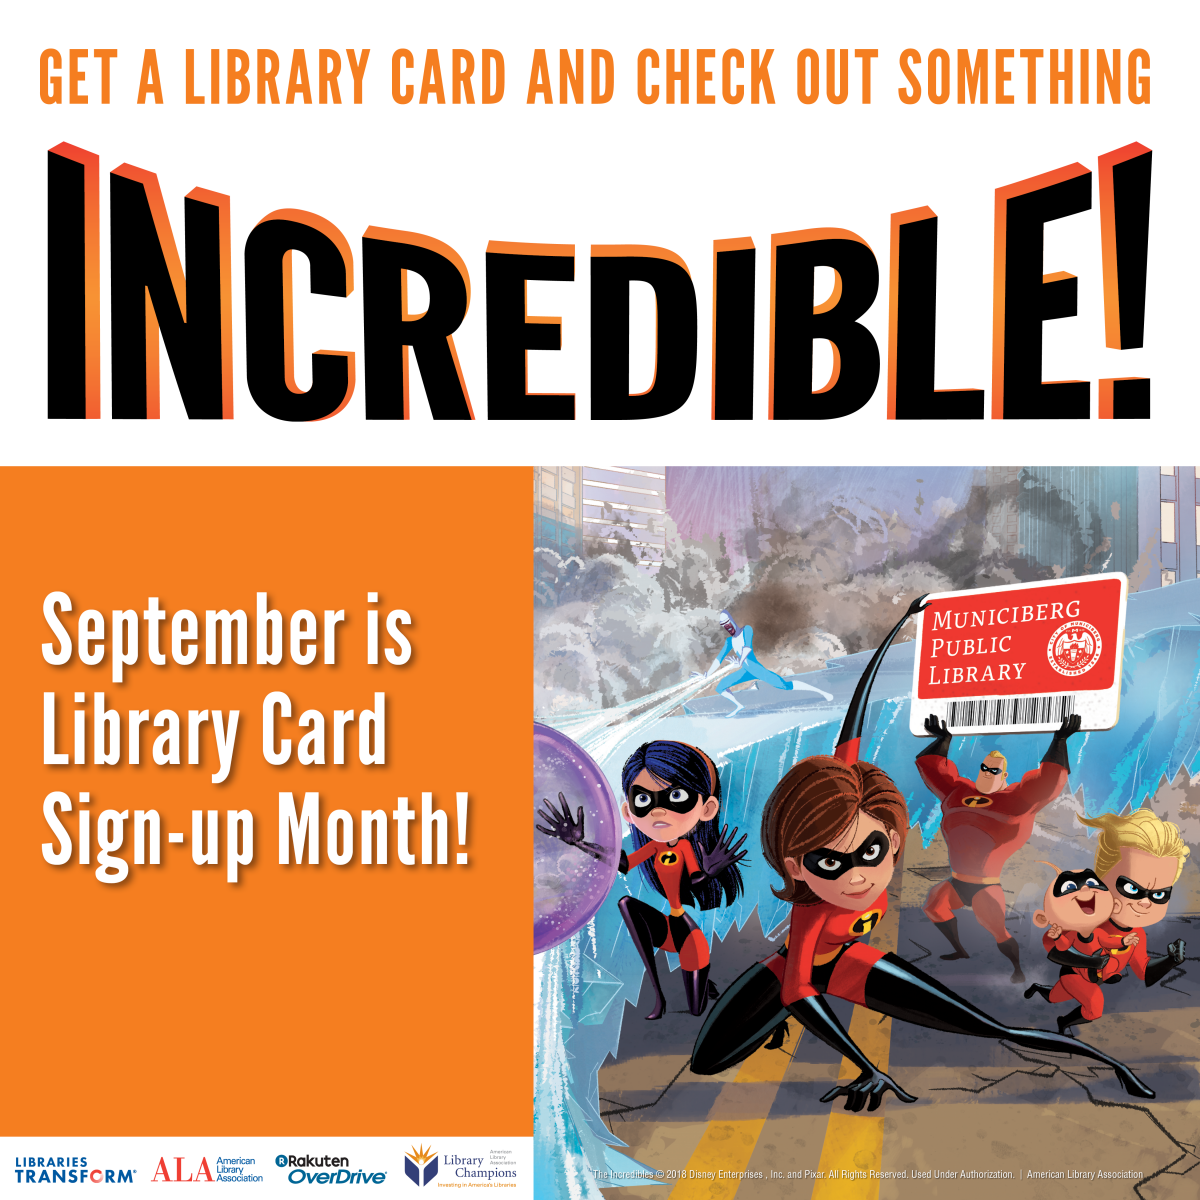 September is Library Card Signup Month